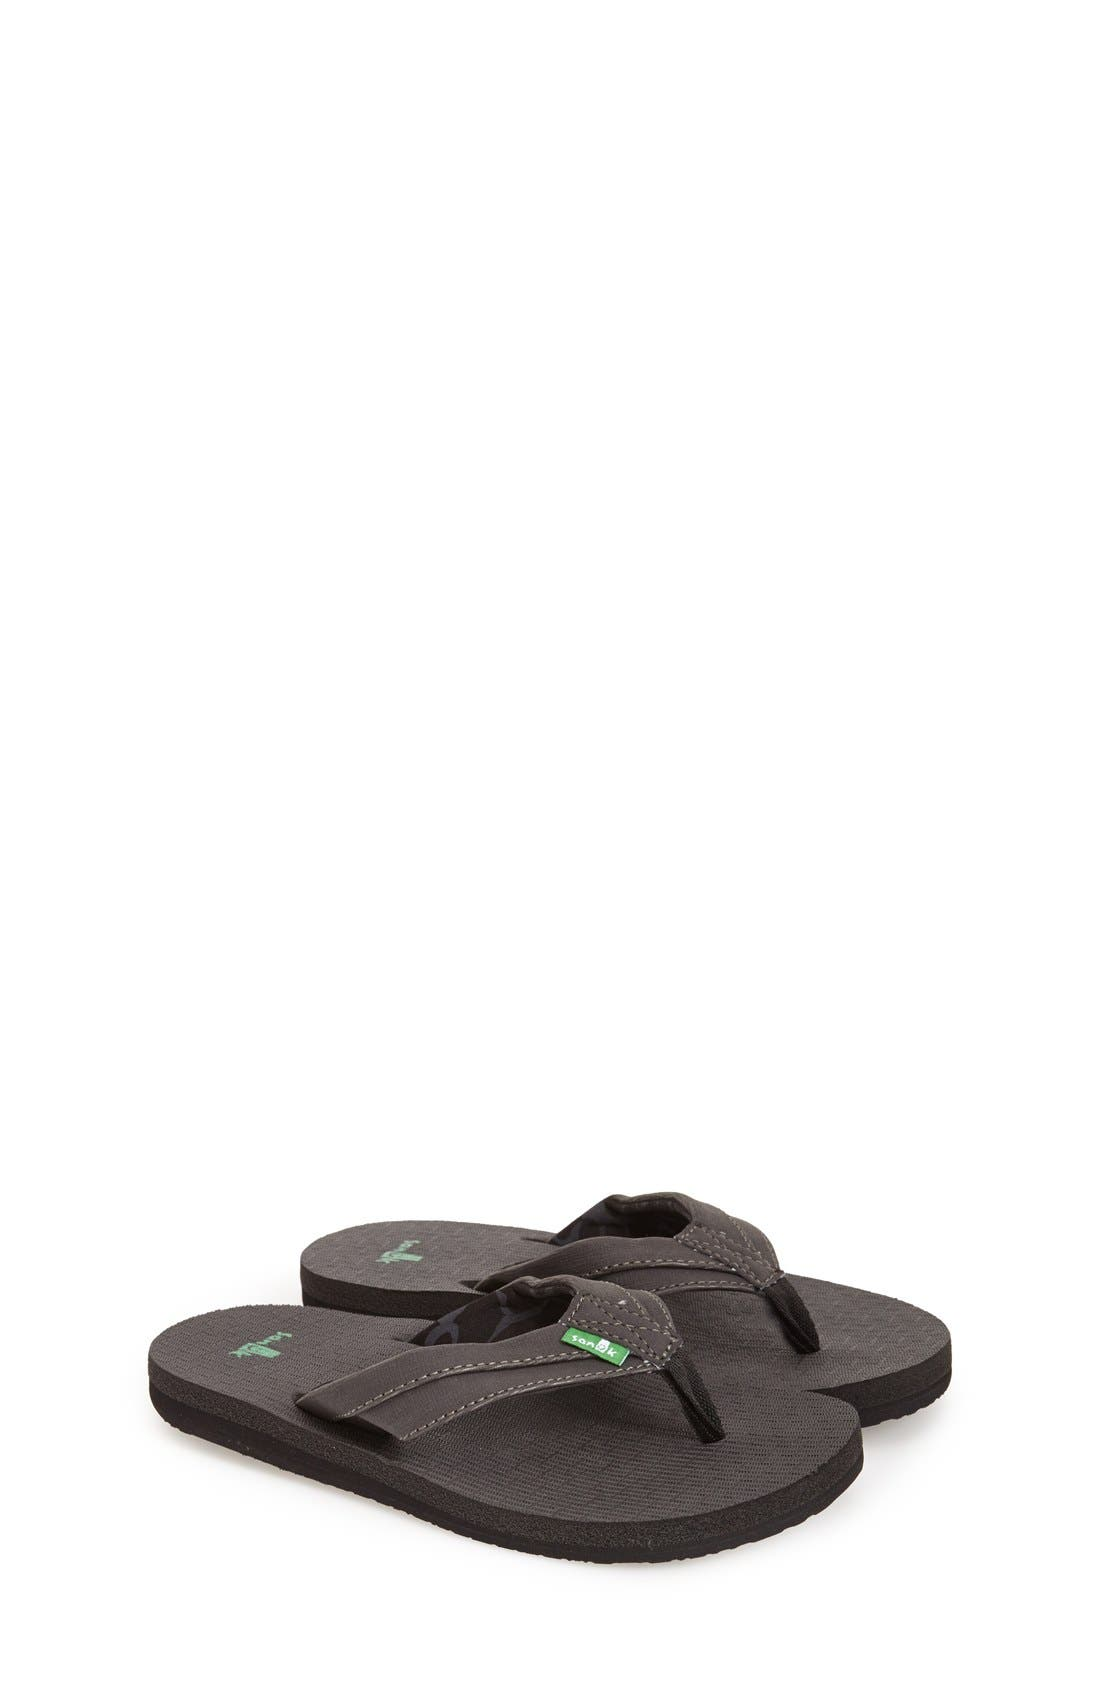 'Rootbeer Cozy' Lightweight Flip Flop Sandal,                             Main thumbnail 1, color,                             001